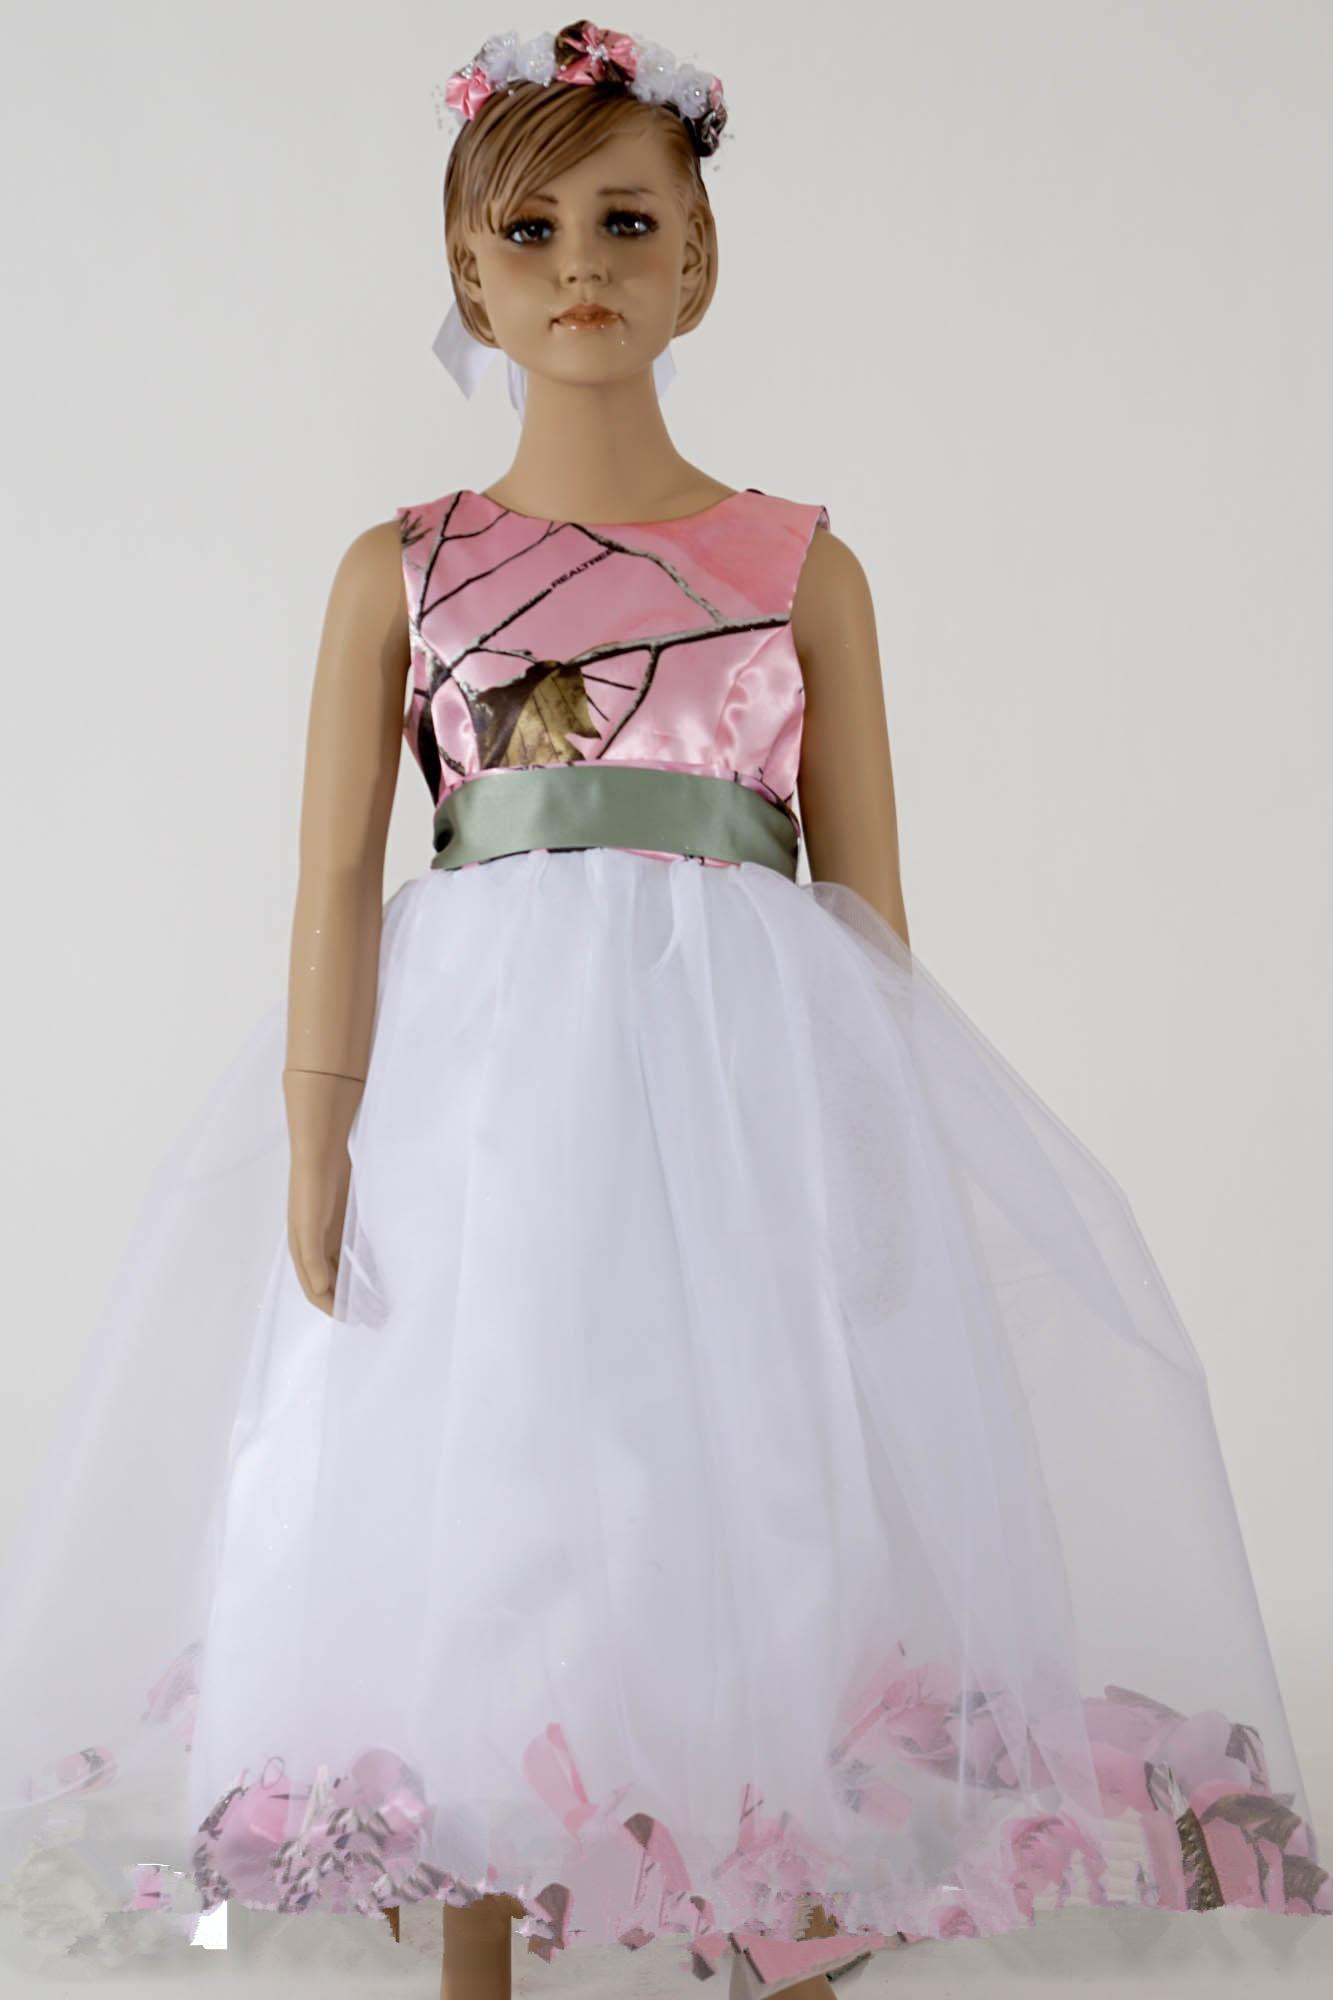 Pink camo dresses for little girls ball gowns flower girls for Wedding dresses camouflage pink